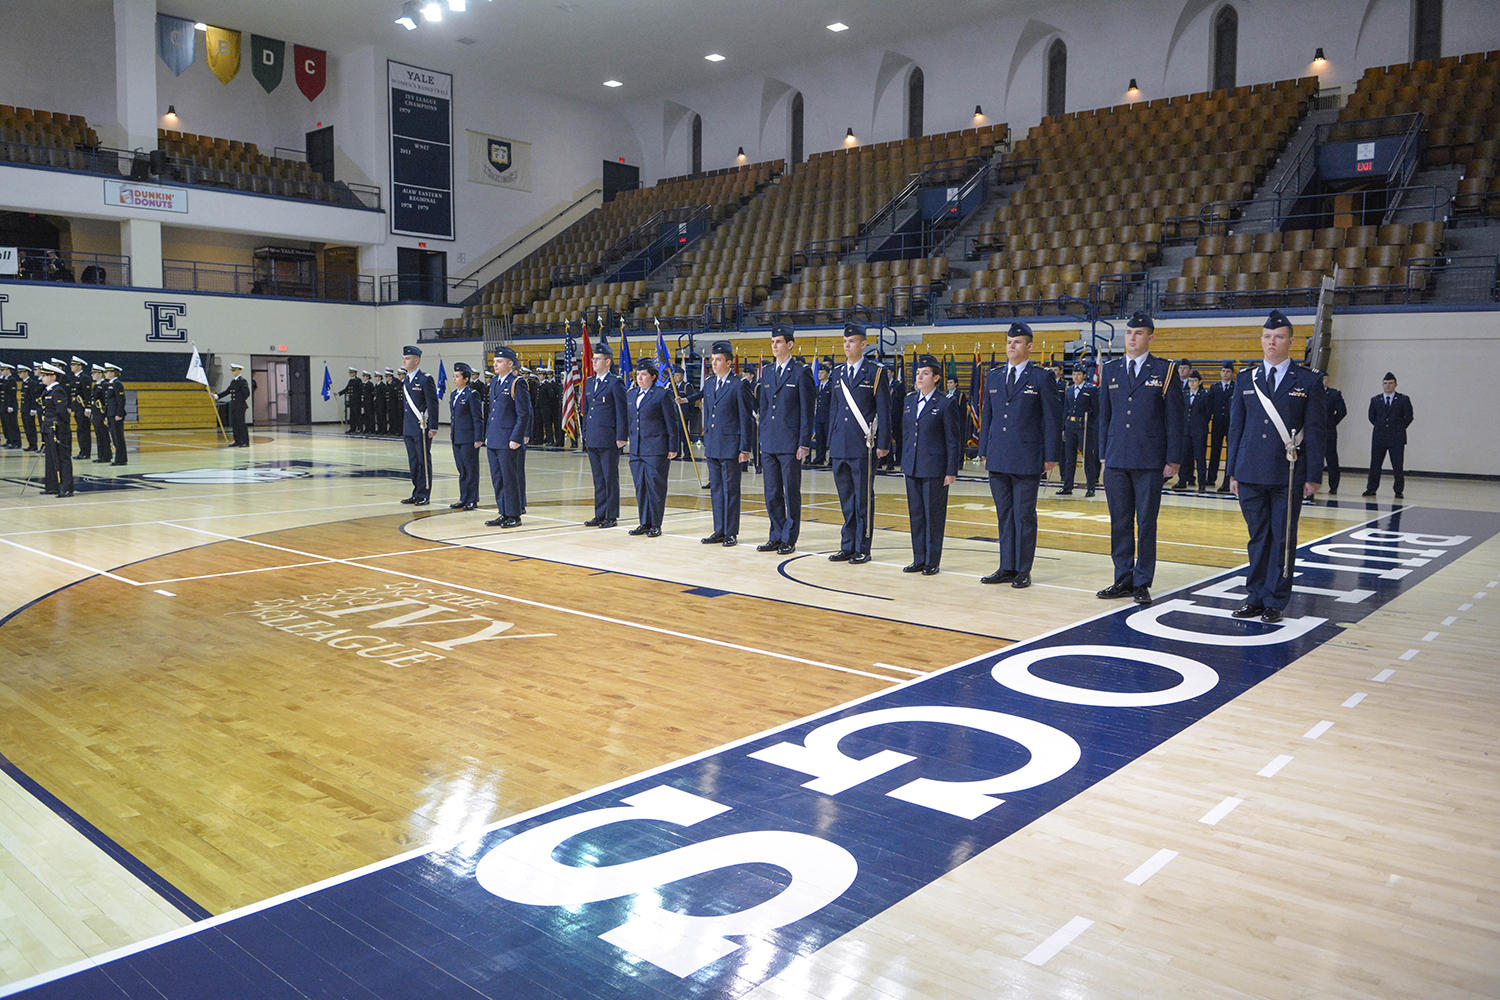 ROTC students stand in formation during ceremony.